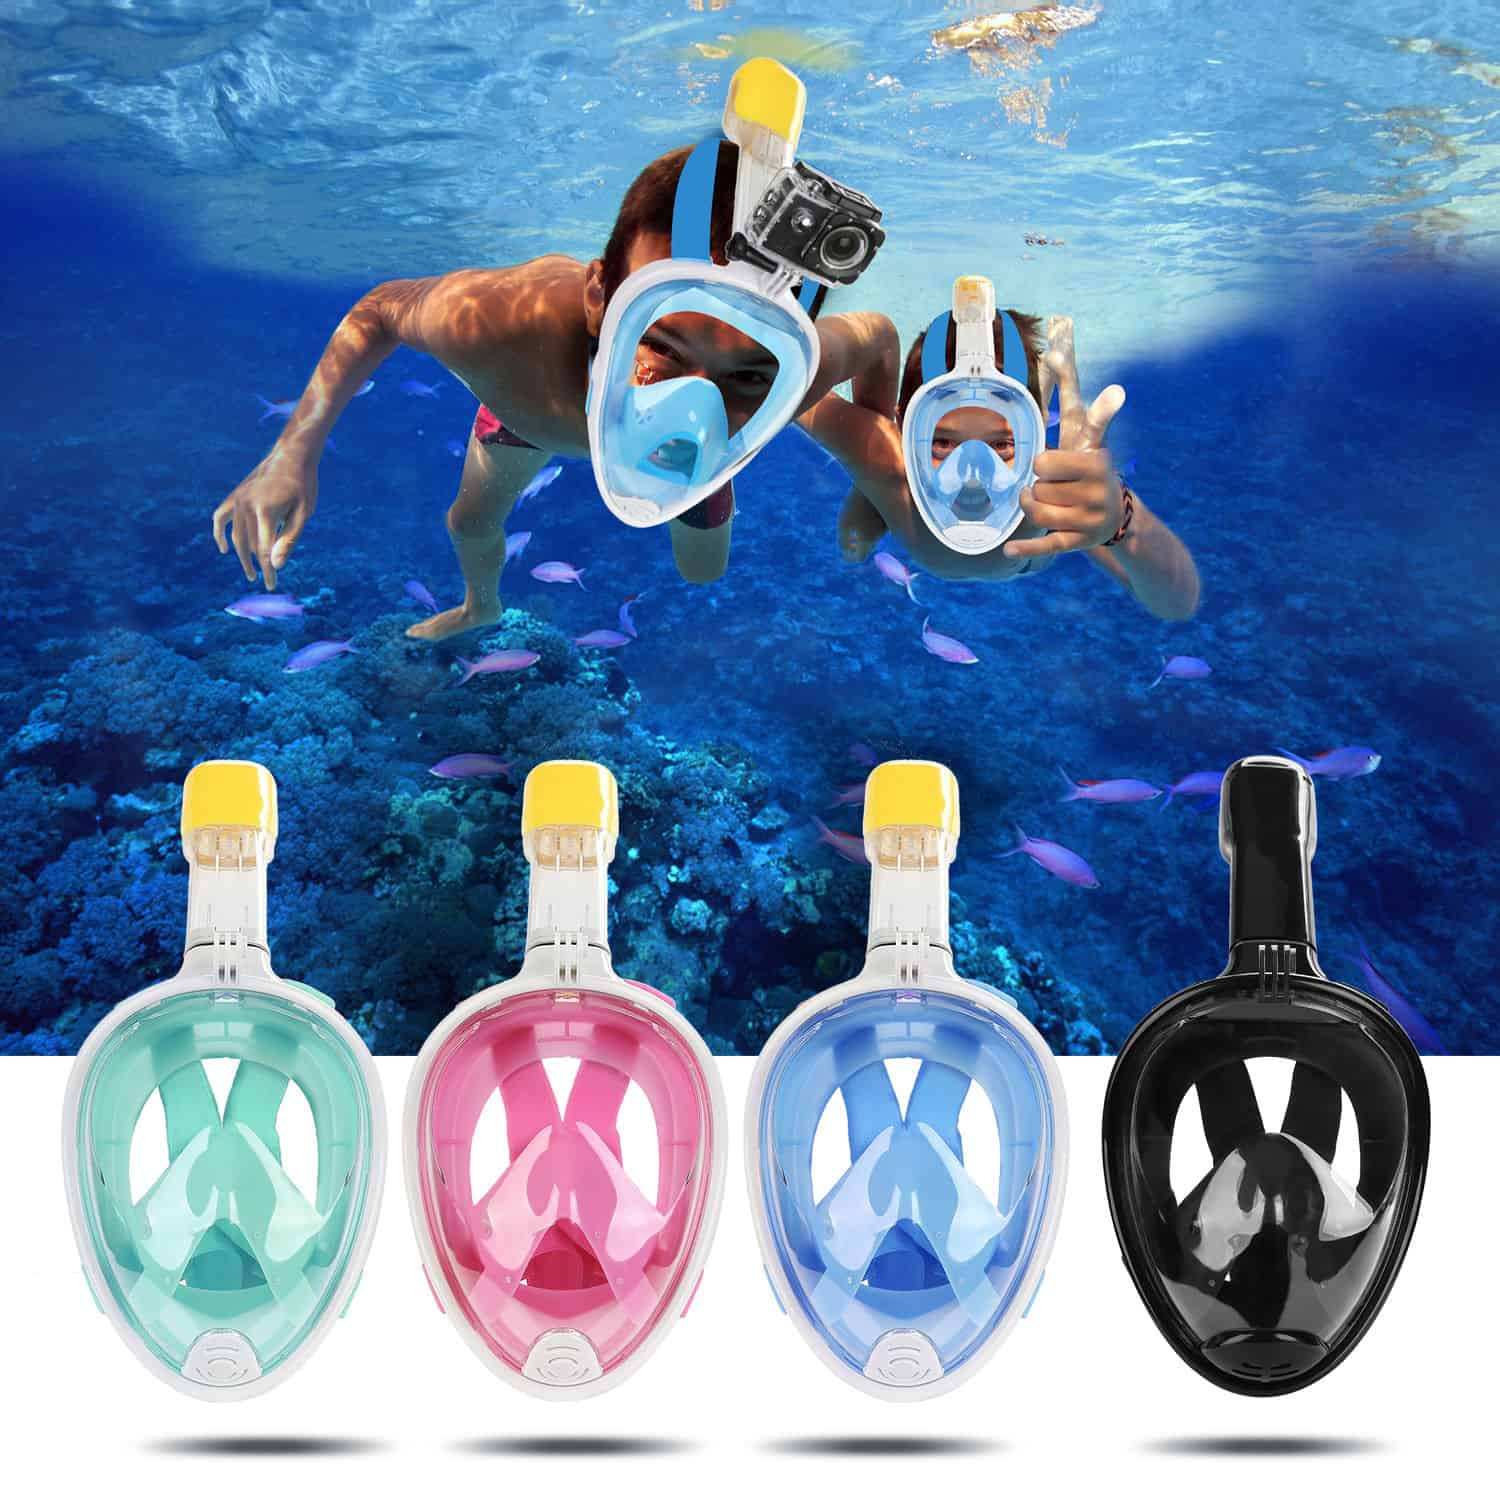 VianPool swimming-goggles-snorkeling-full-face-diving-mask-s-l-water-sports-for-gopro-e0617d2b5d4a9d1737ab1b942be0ef82-2